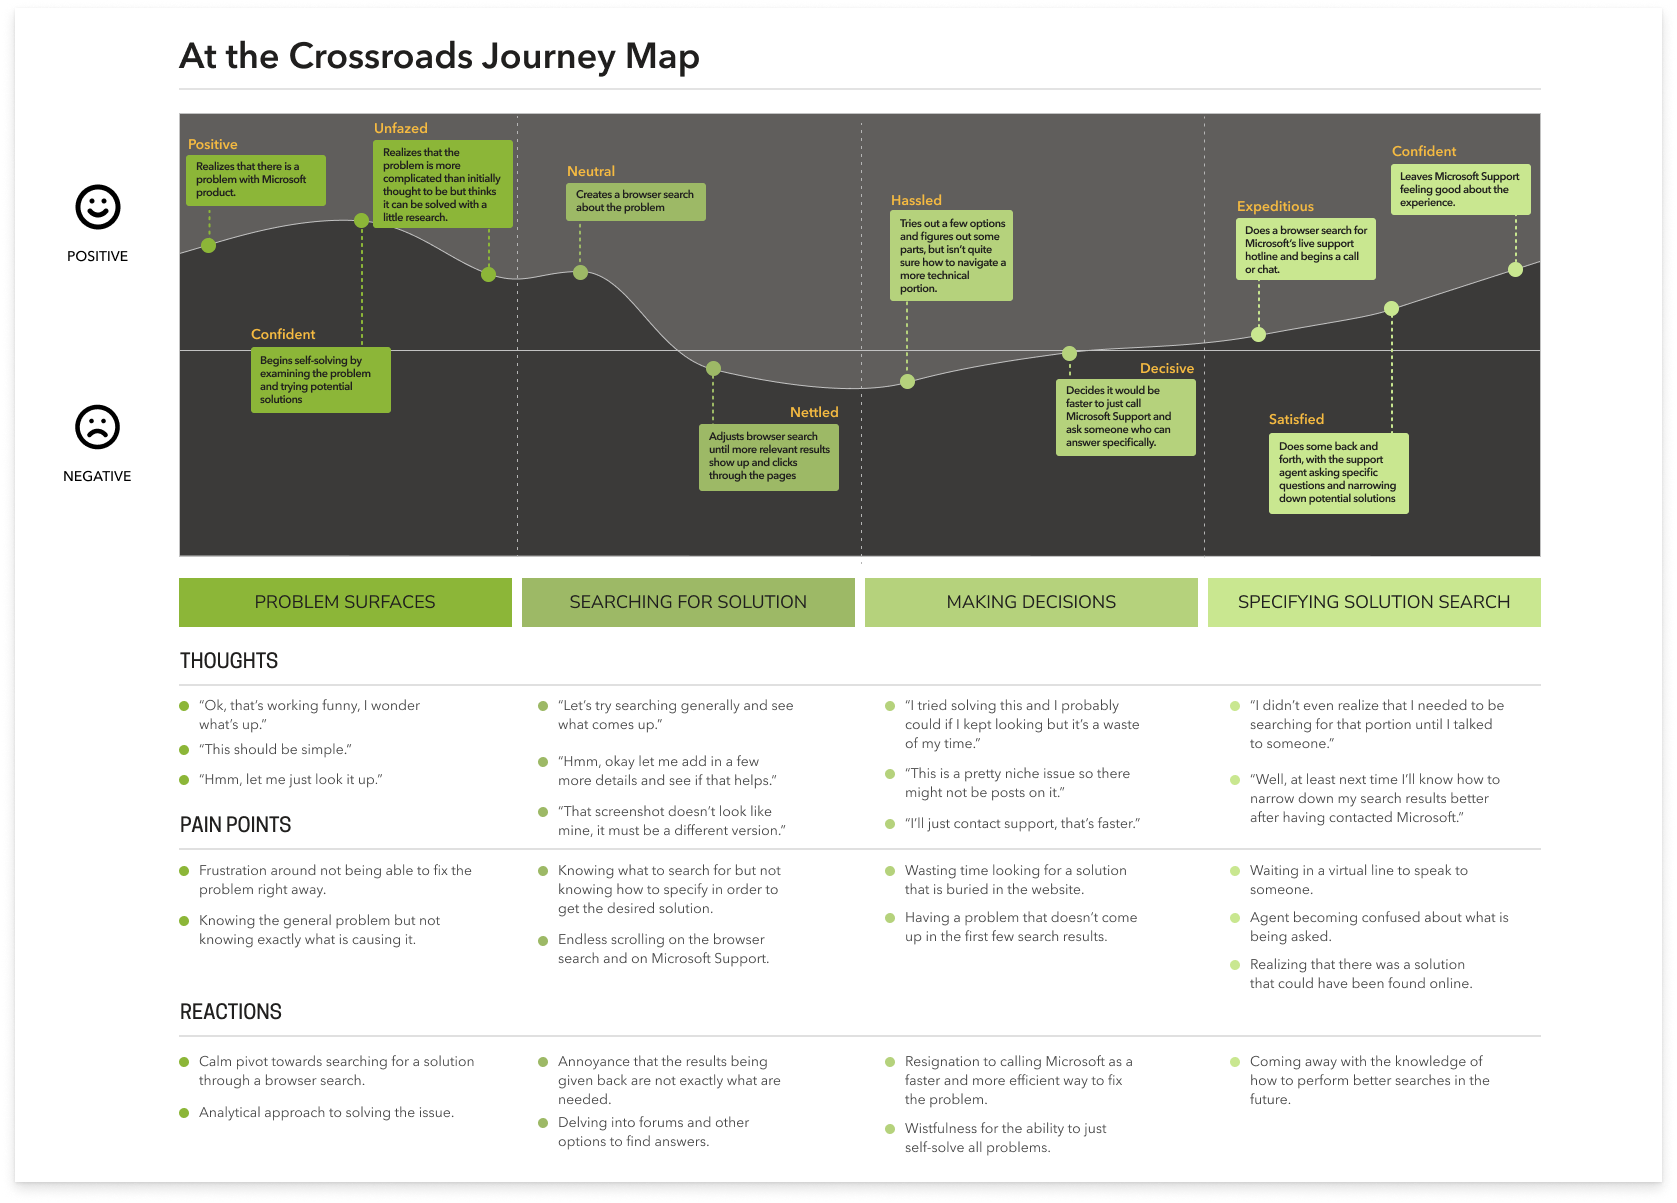 A graphical representation of the thoughts, pain points, reactions, ups and downs in the at the crossroads journey.